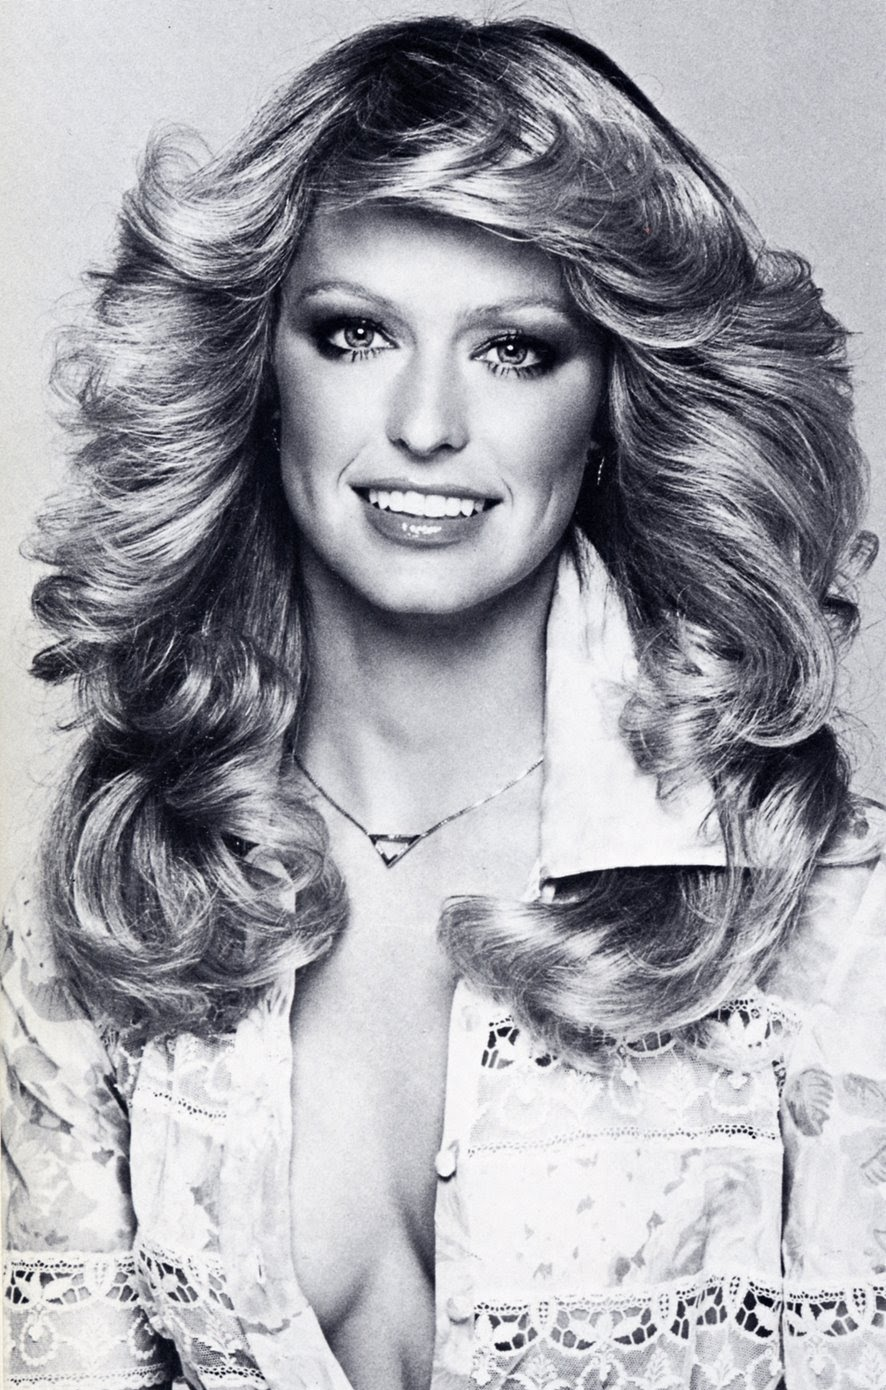 Farrah+Fawcett+Francesco+Scavullo+Women+Management+New+York+Blog+2